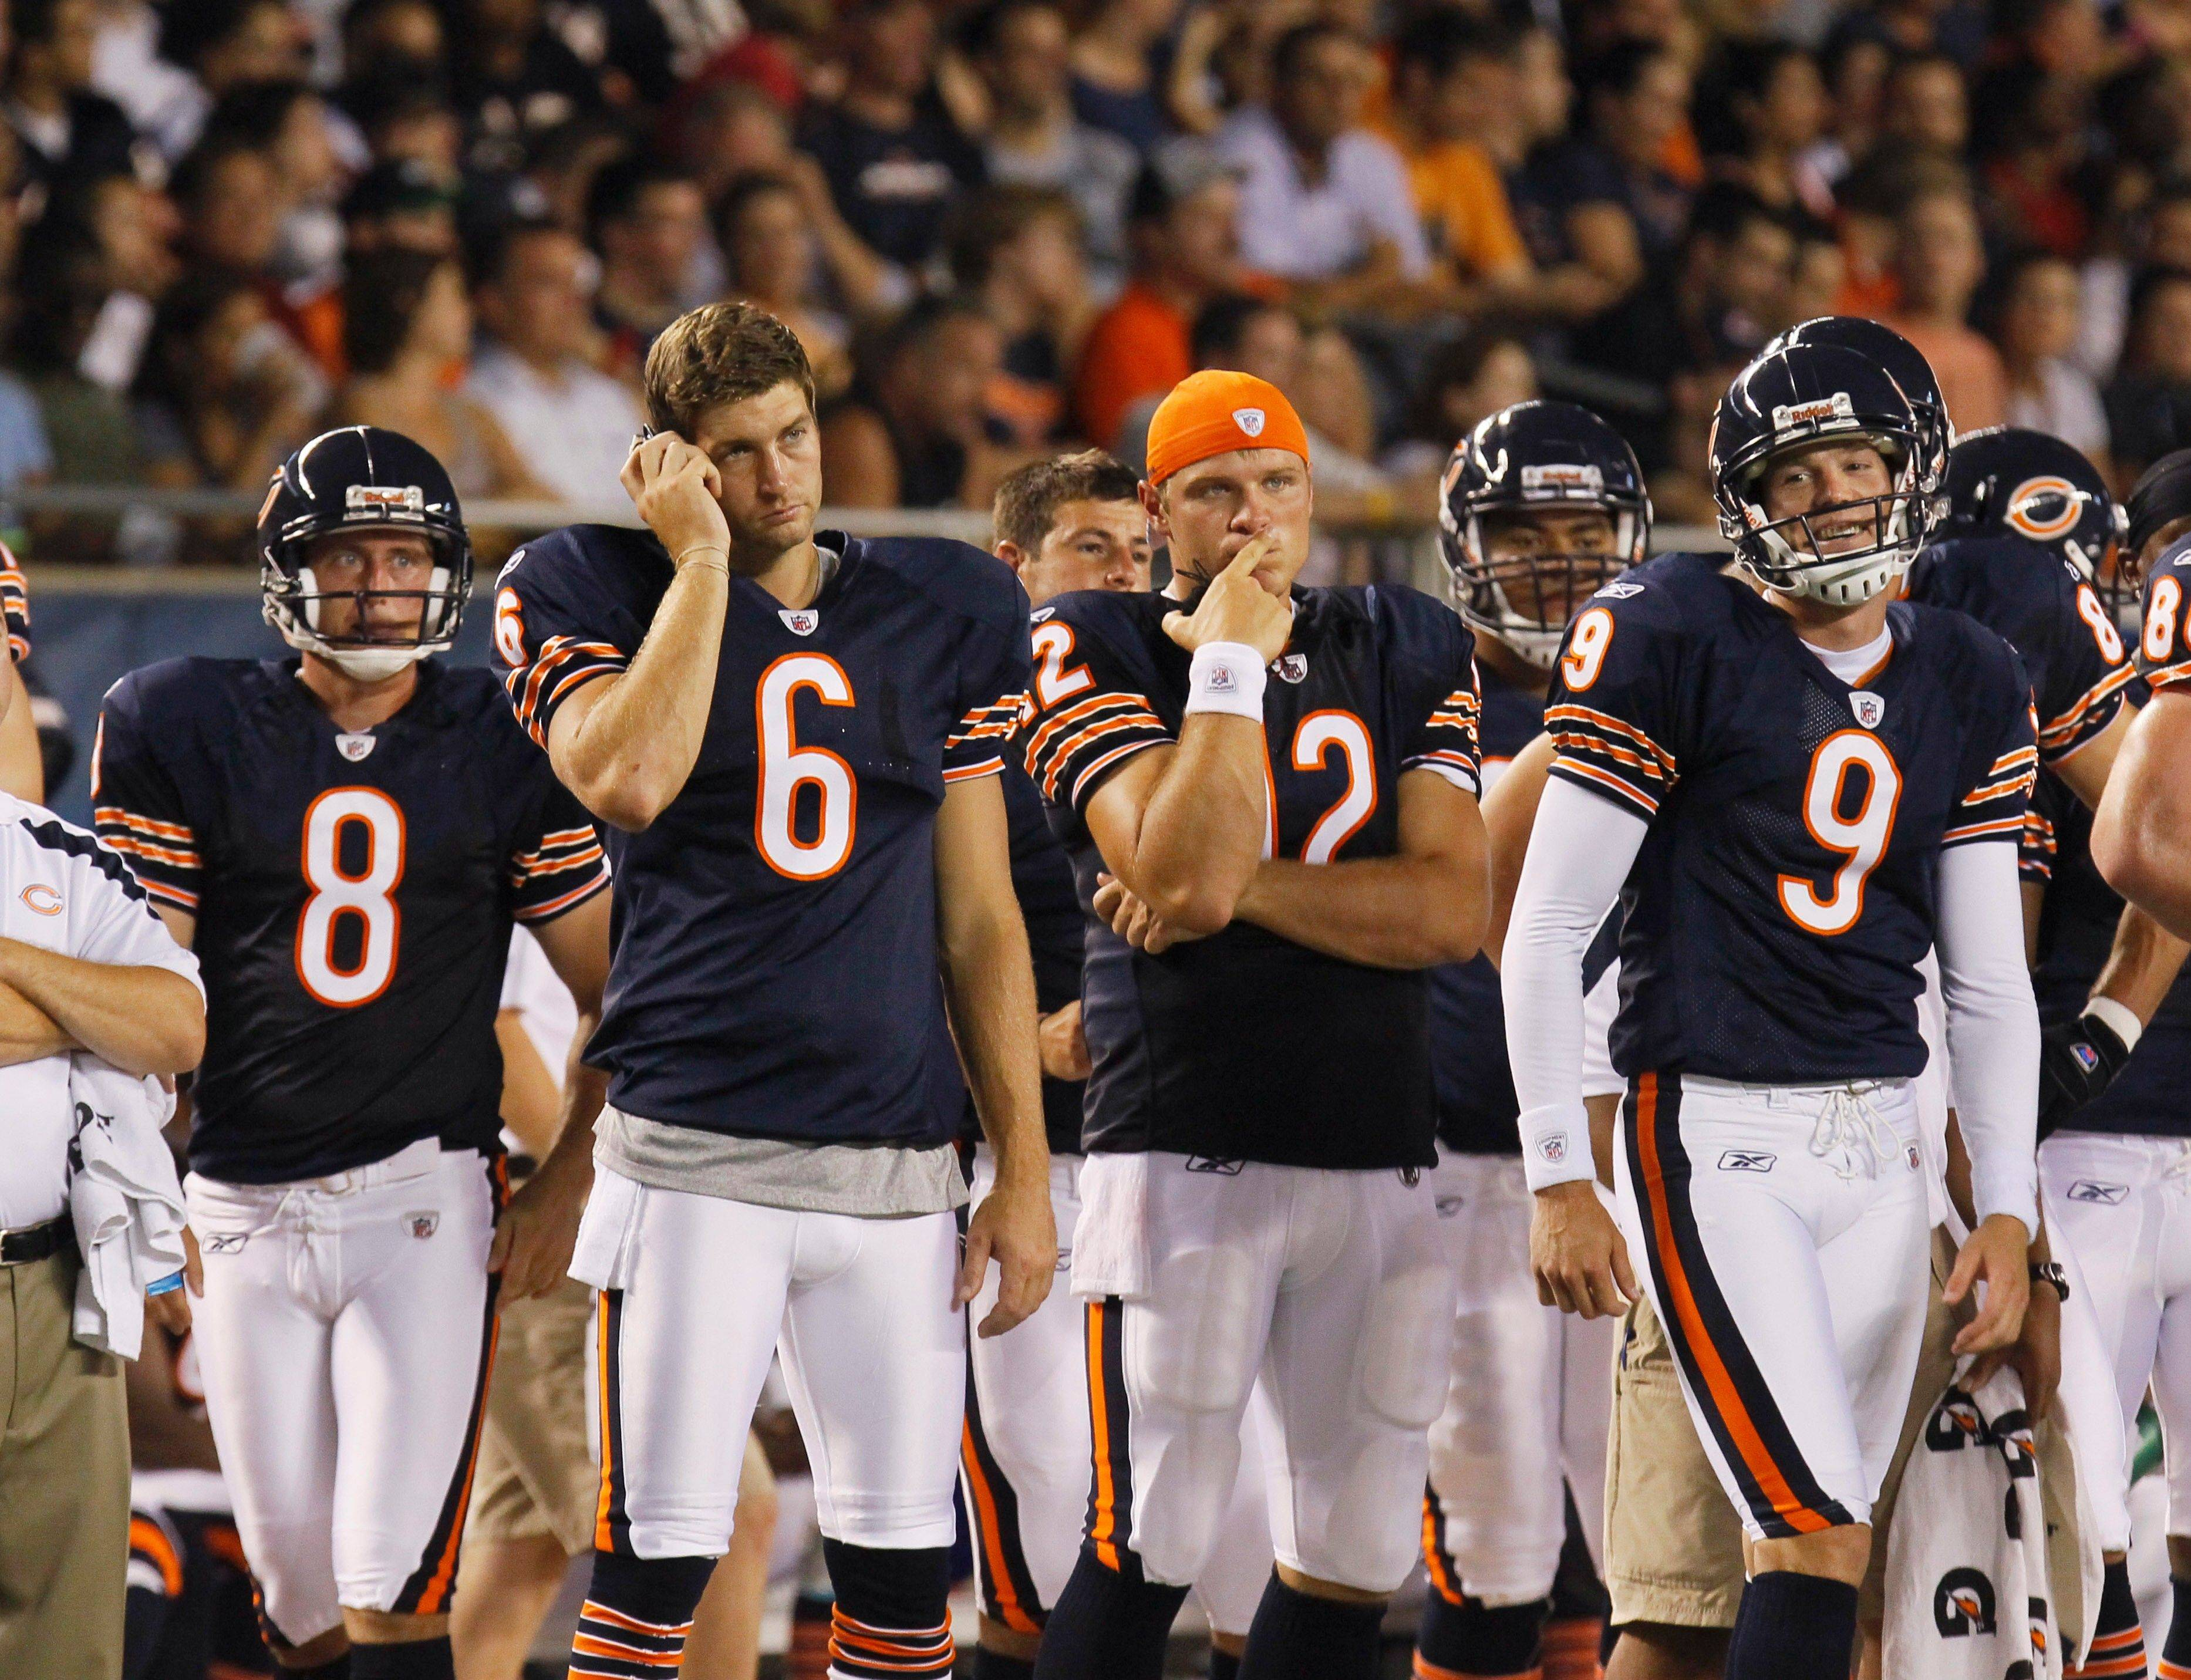 Chicago Bears players punter Adam Podlesh, quarterback Jay Cutler, quarterback Caleb Hanie and placekicker Robbie Gould watch the action from the sidelines in the first half.